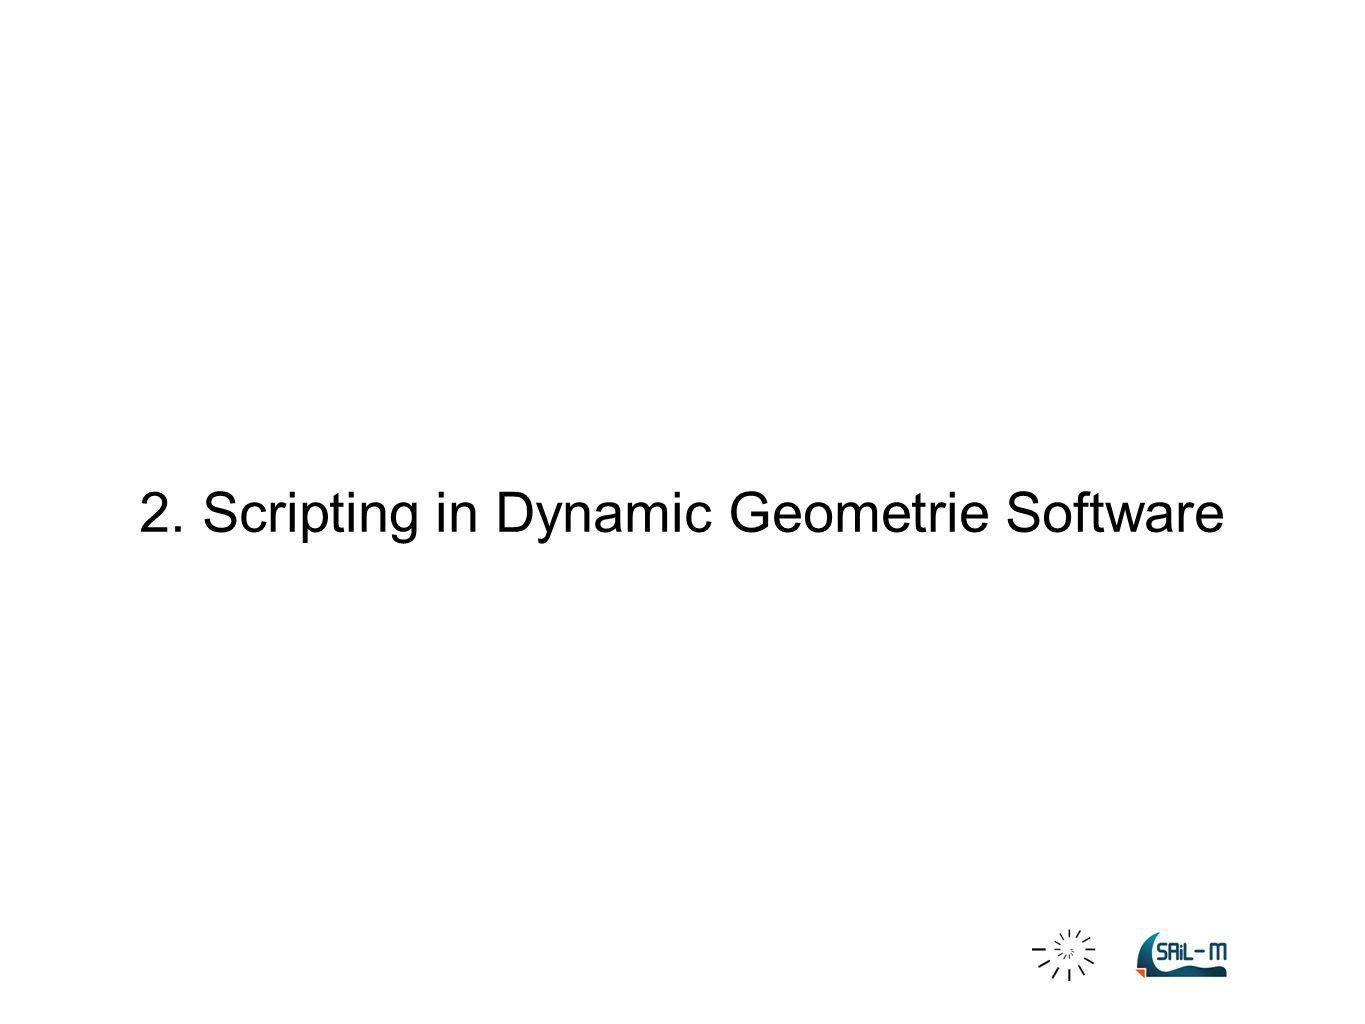 2. Scripting in Dynamic Geometrie Software